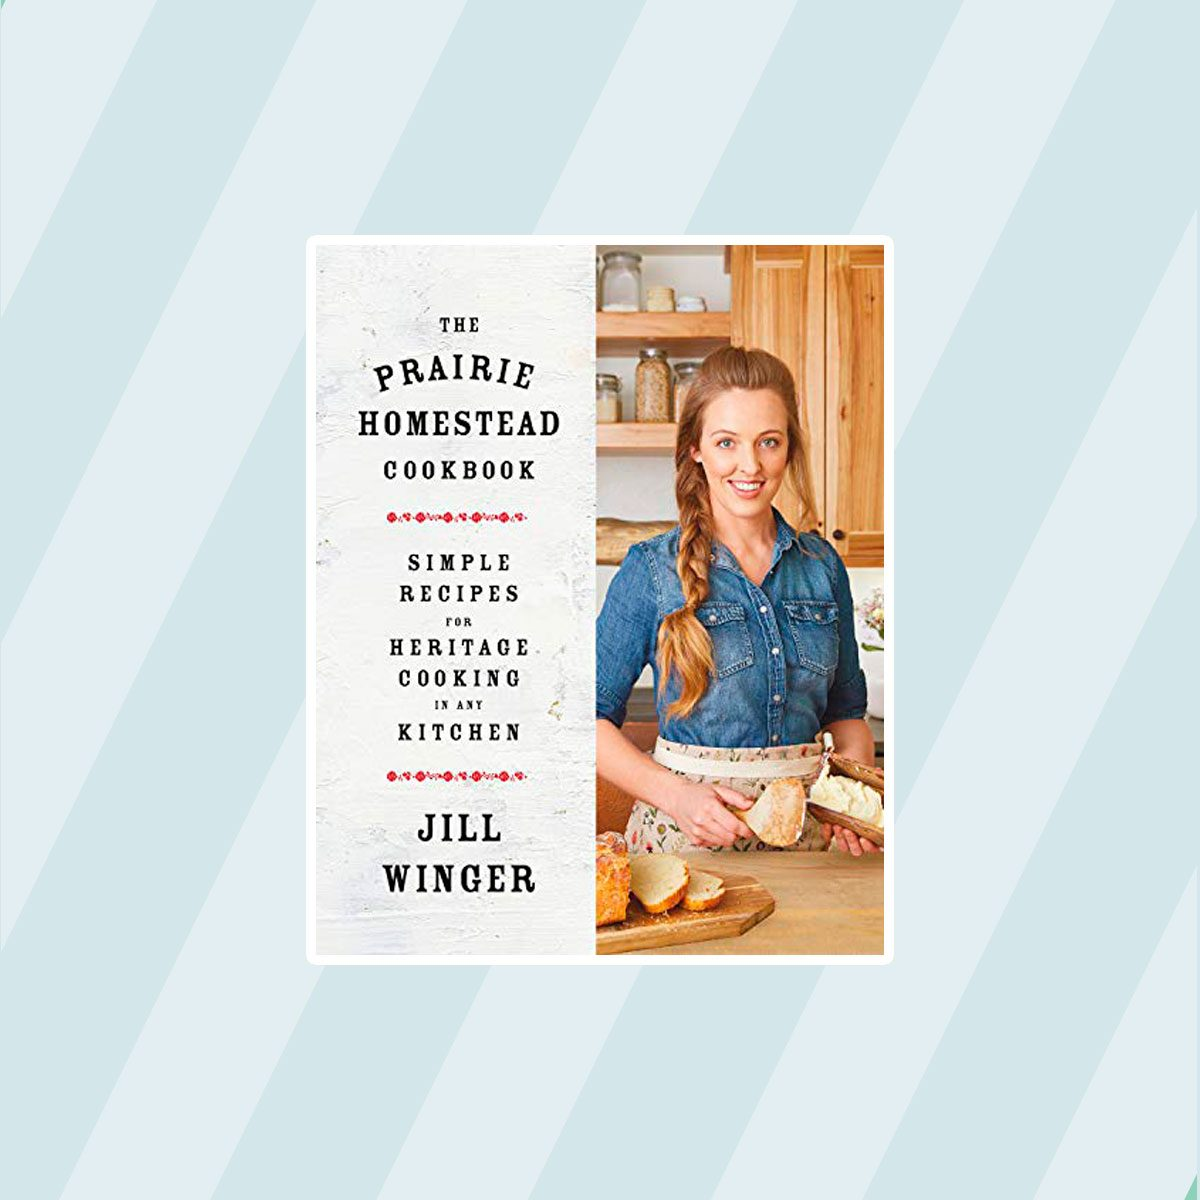 The Prairie Homestead: Simple Recipes for Heritage Cooking in Any Kitchen